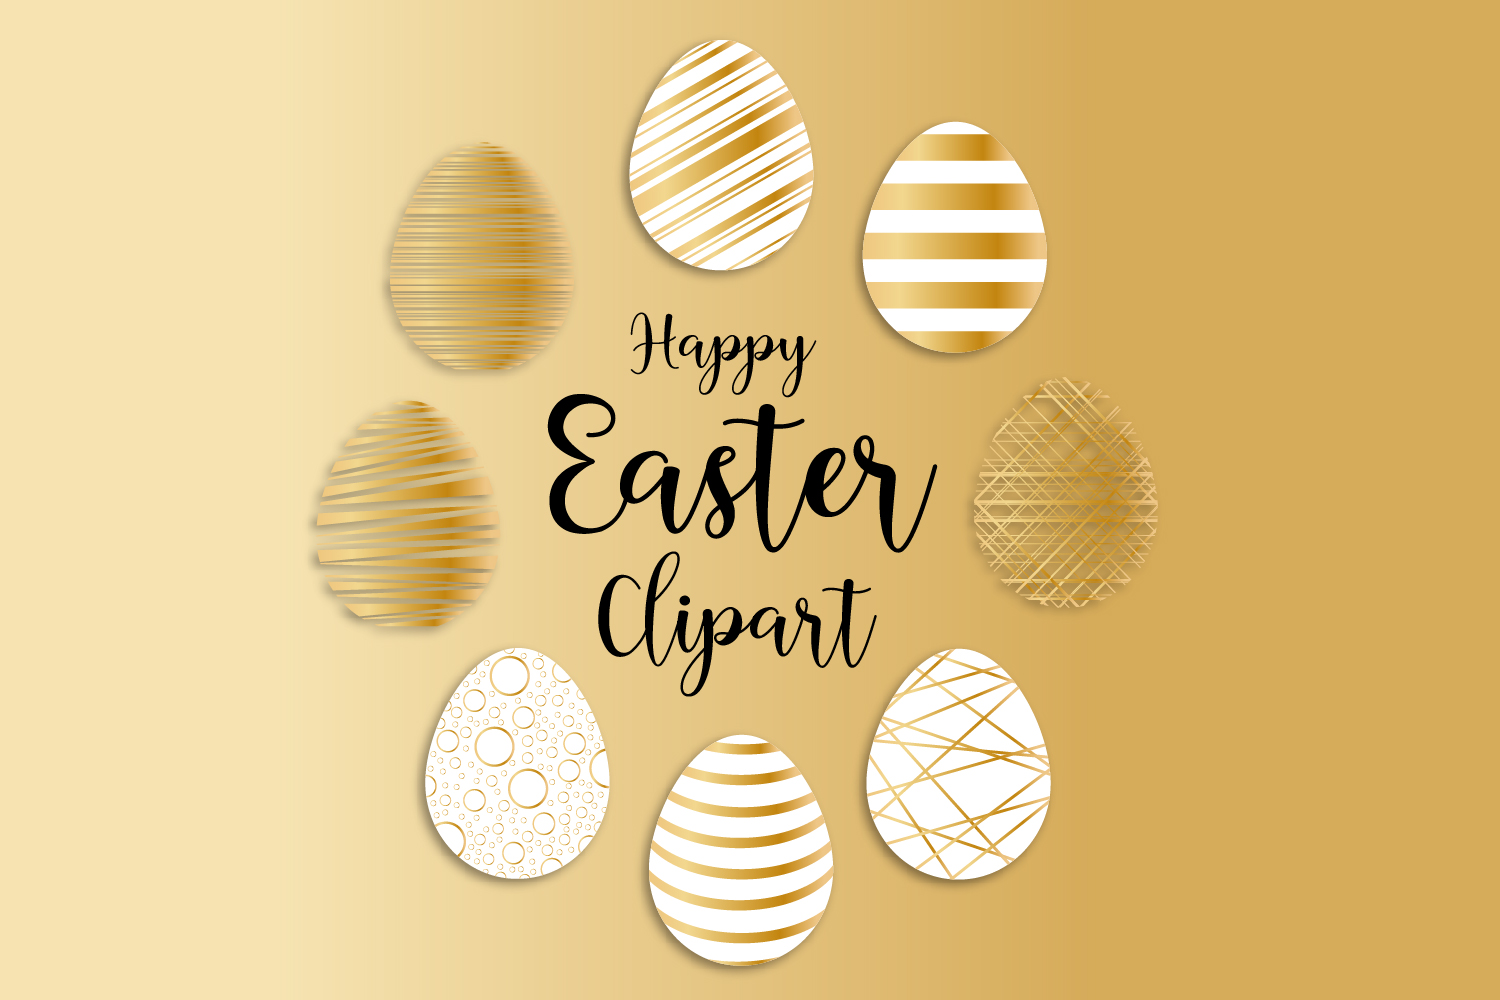 Download Free Gold Easter Egg Clipart Easter Graphic By Igraphic Studio for Cricut Explore, Silhouette and other cutting machines.